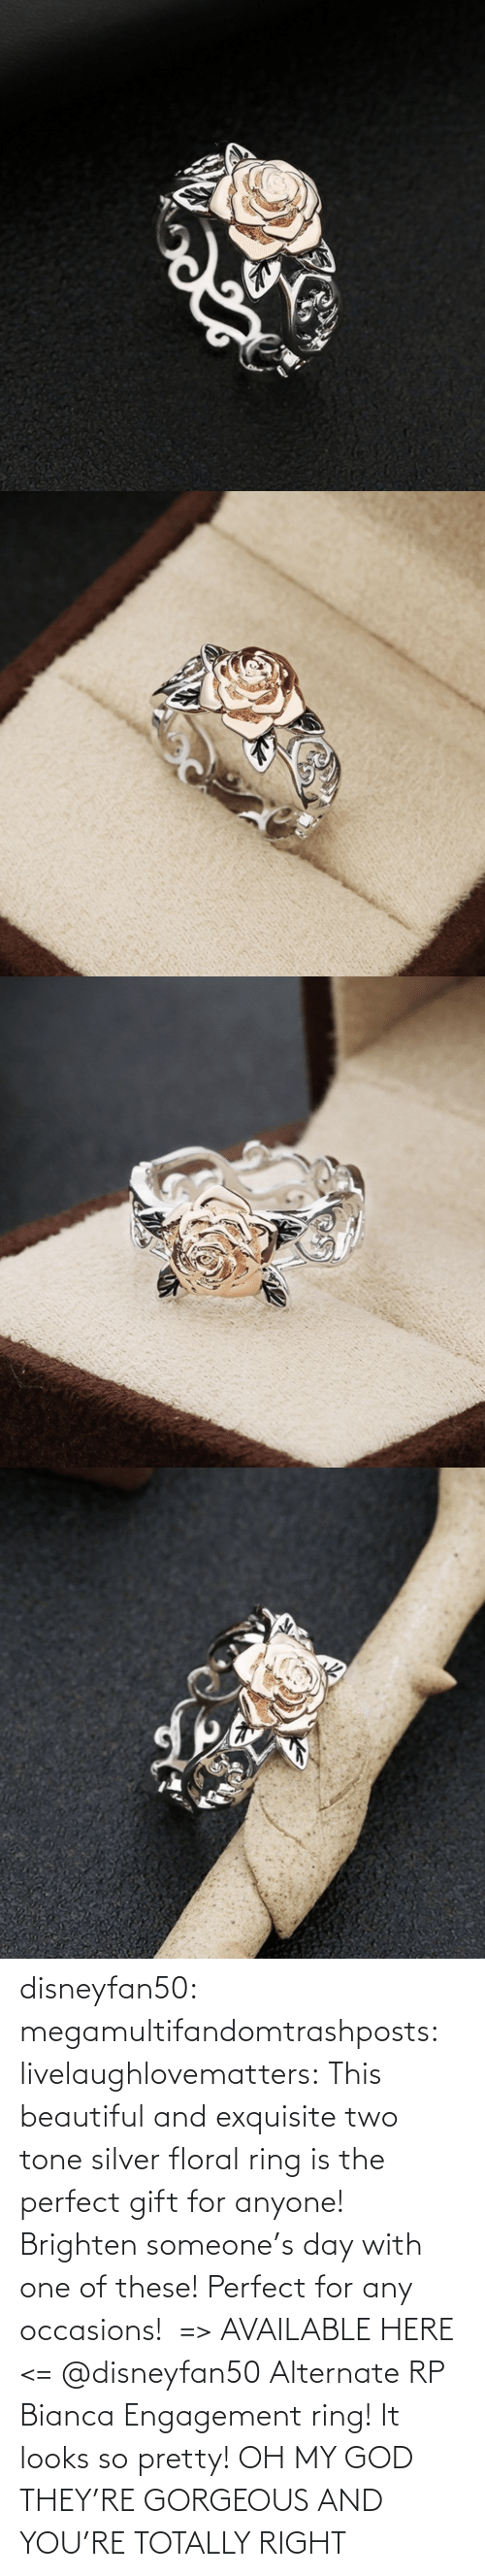 anyone: disneyfan50: megamultifandomtrashposts:  livelaughlovematters:  This beautiful and exquisite two tone silver floral ring is the perfect gift for anyone! Brighten someone's day with one of these! Perfect for any occasions!  => AVAILABLE HERE <=    @disneyfan50 Alternate RP Bianca Engagement ring! It looks so pretty!  OH MY GOD THEY'RE GORGEOUS AND YOU'RE TOTALLY RIGHT